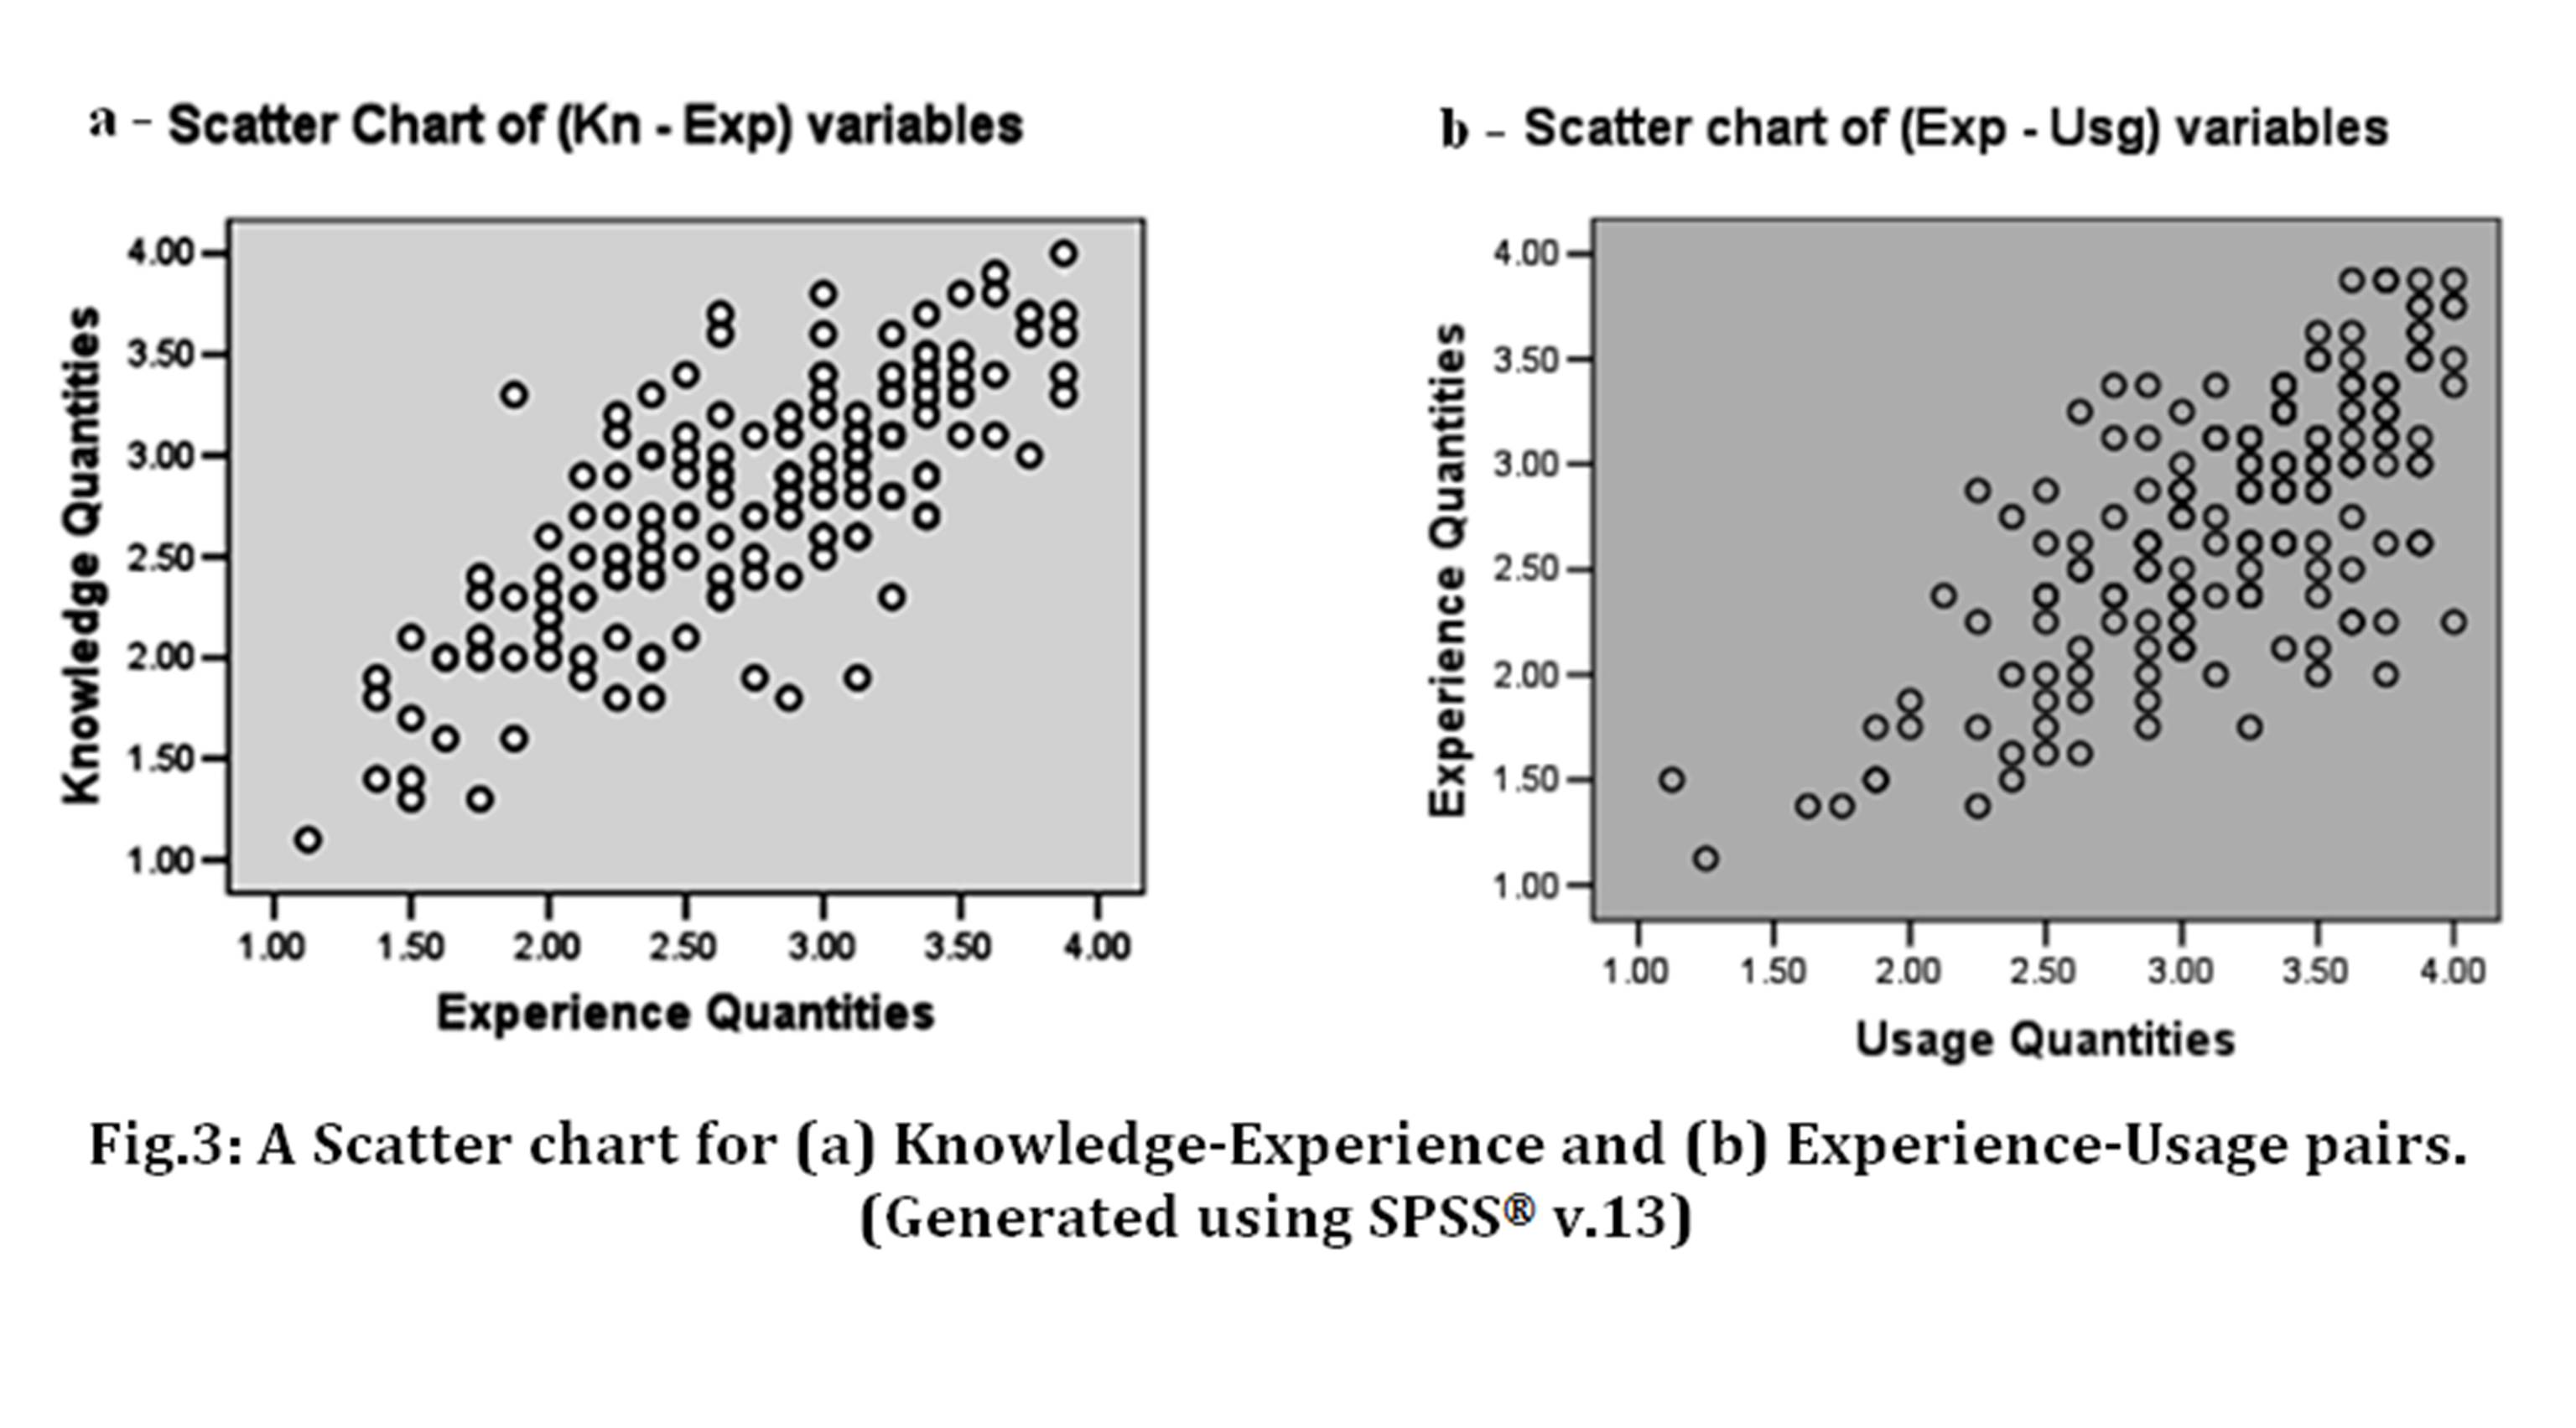 Ibima Publishing On The Effects Of Mobile User Knowledge Of Mobile Platform On The Utilization